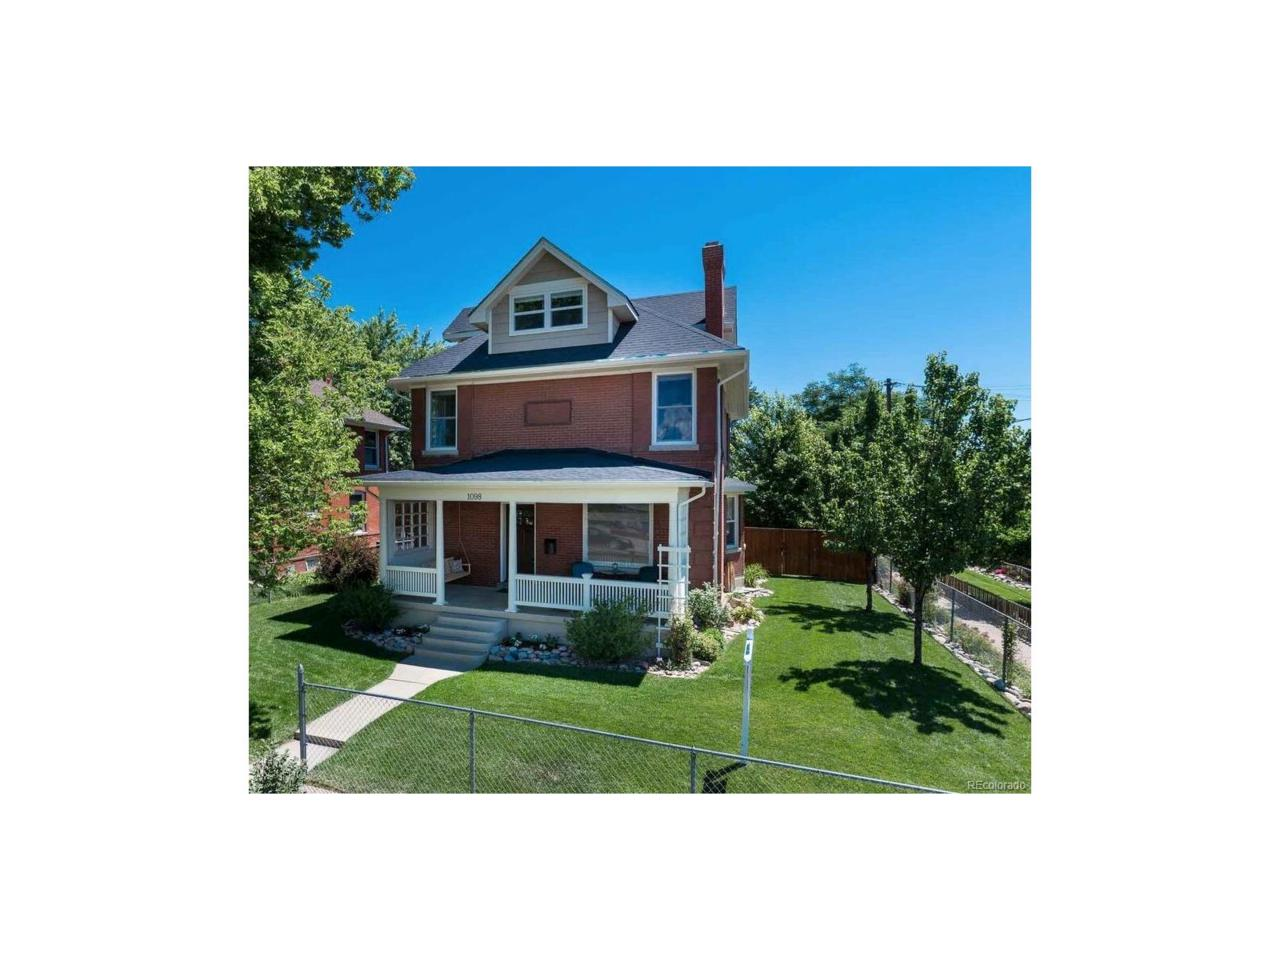 1098 S Pearl Street, Denver, CO 80209 (MLS #3391218) :: 8z Real Estate